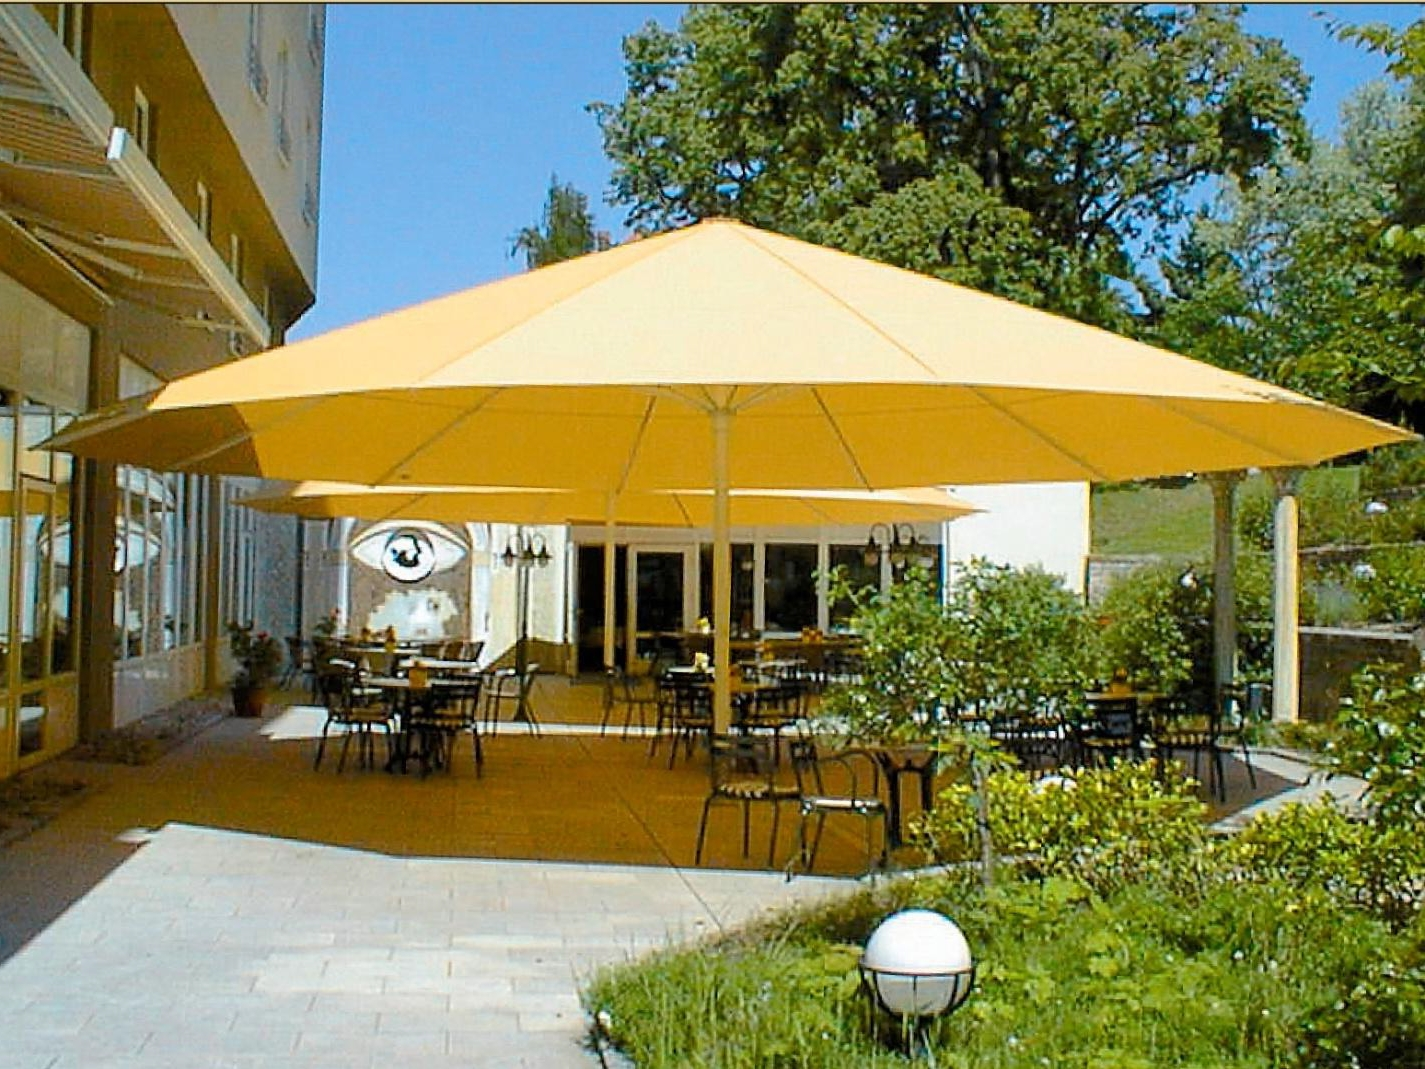 Large Patio Umbrellas With Regard To Favorite 45 Large Patio Umbrella, Zeta Large Umbrellas Large Parasols Apex (Gallery 16 of 20)